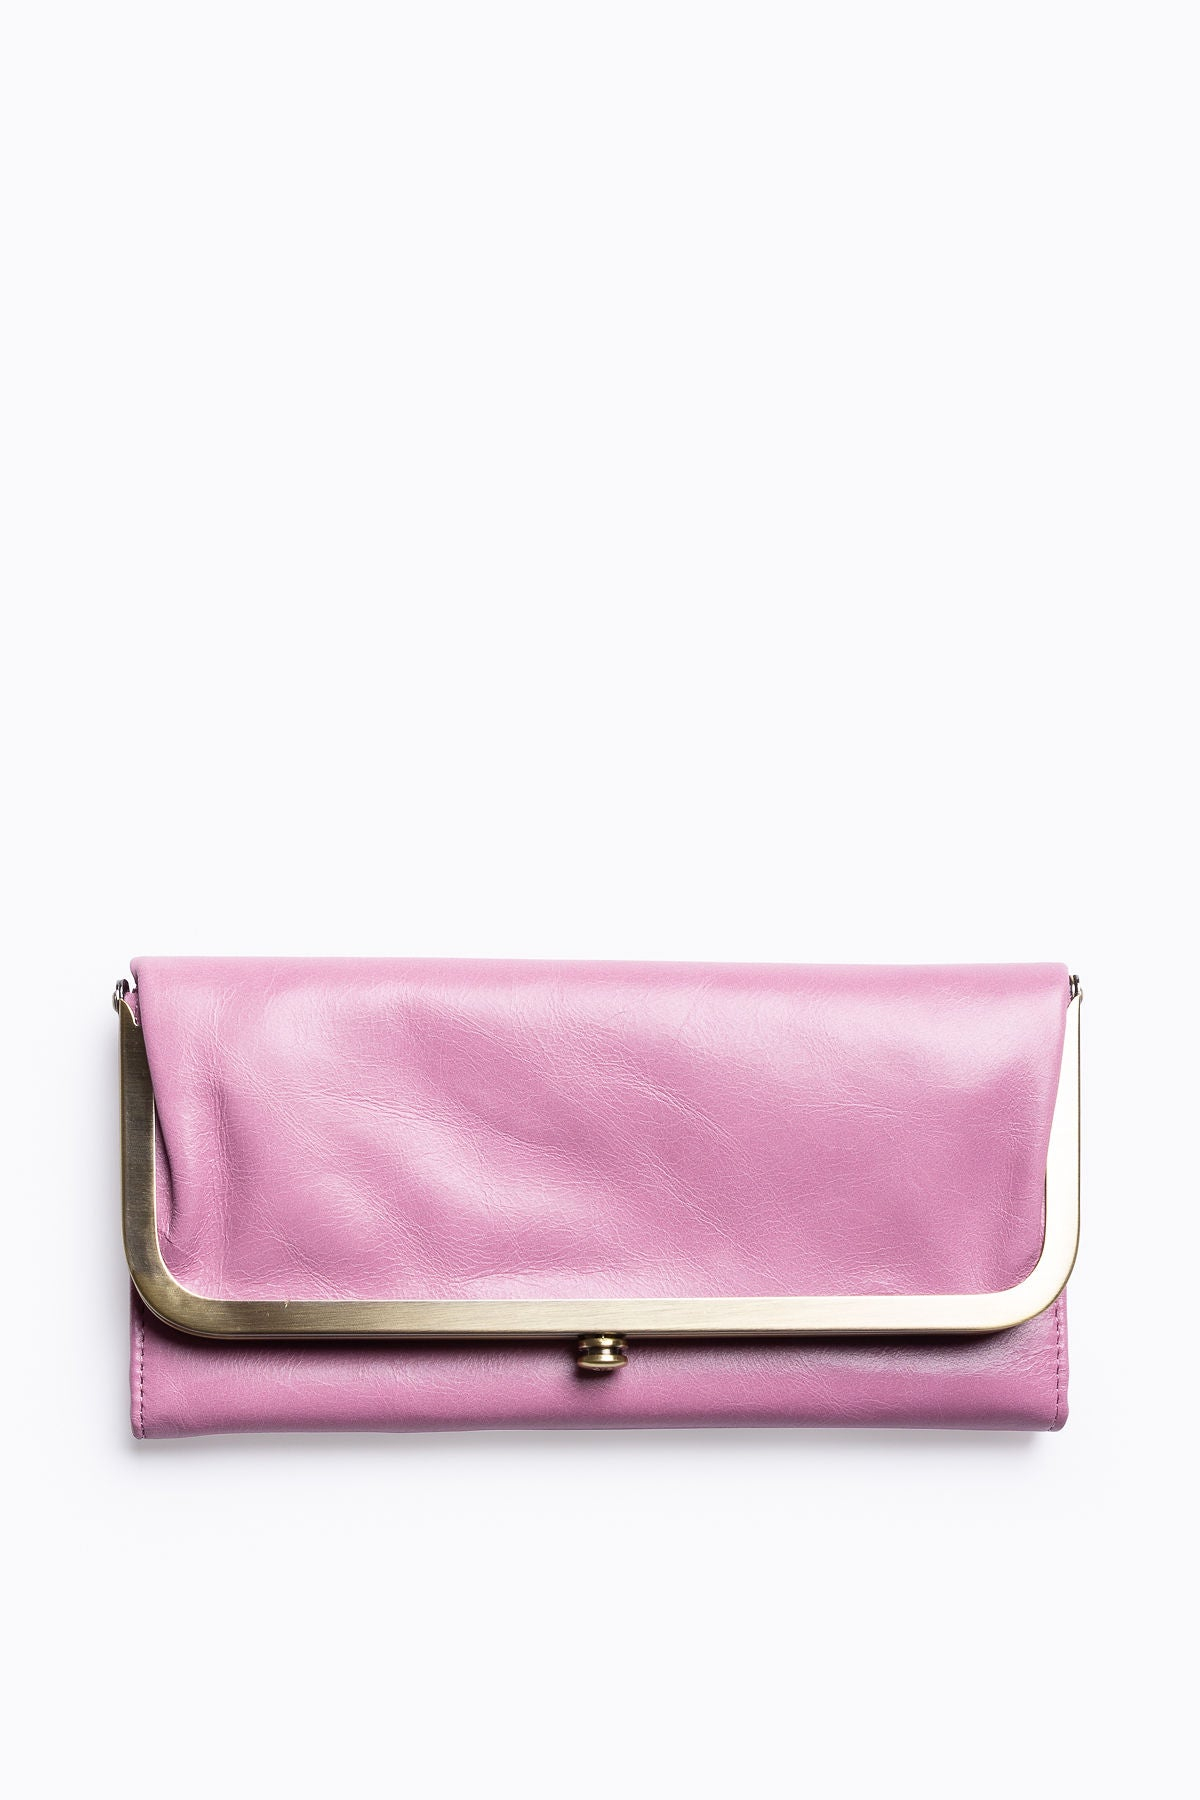 Hobo: Rachel Wallet in Vintage Lilac